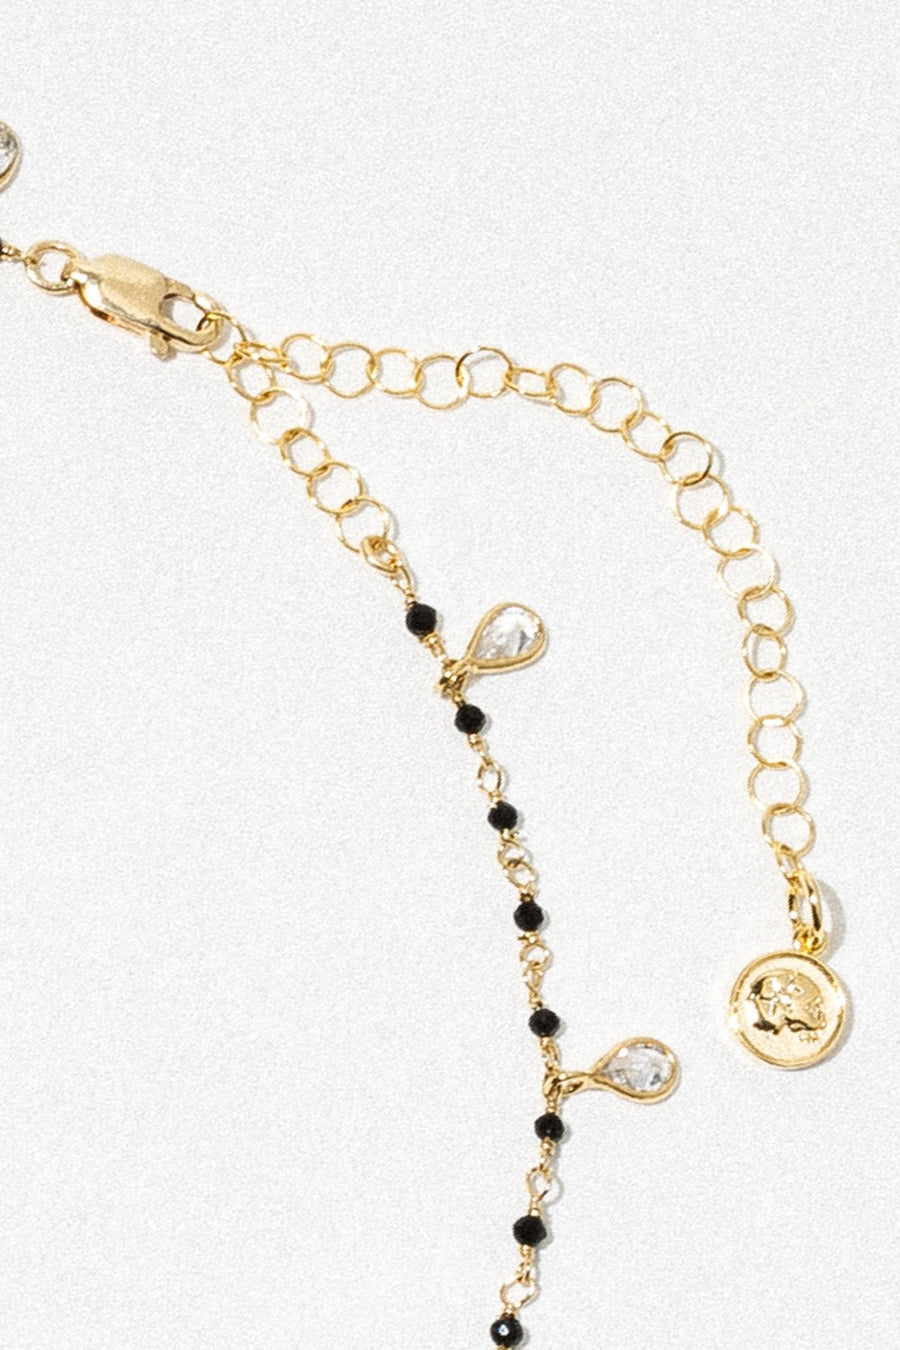 Goddess Jewelry Gold / 12 Inches nCW430